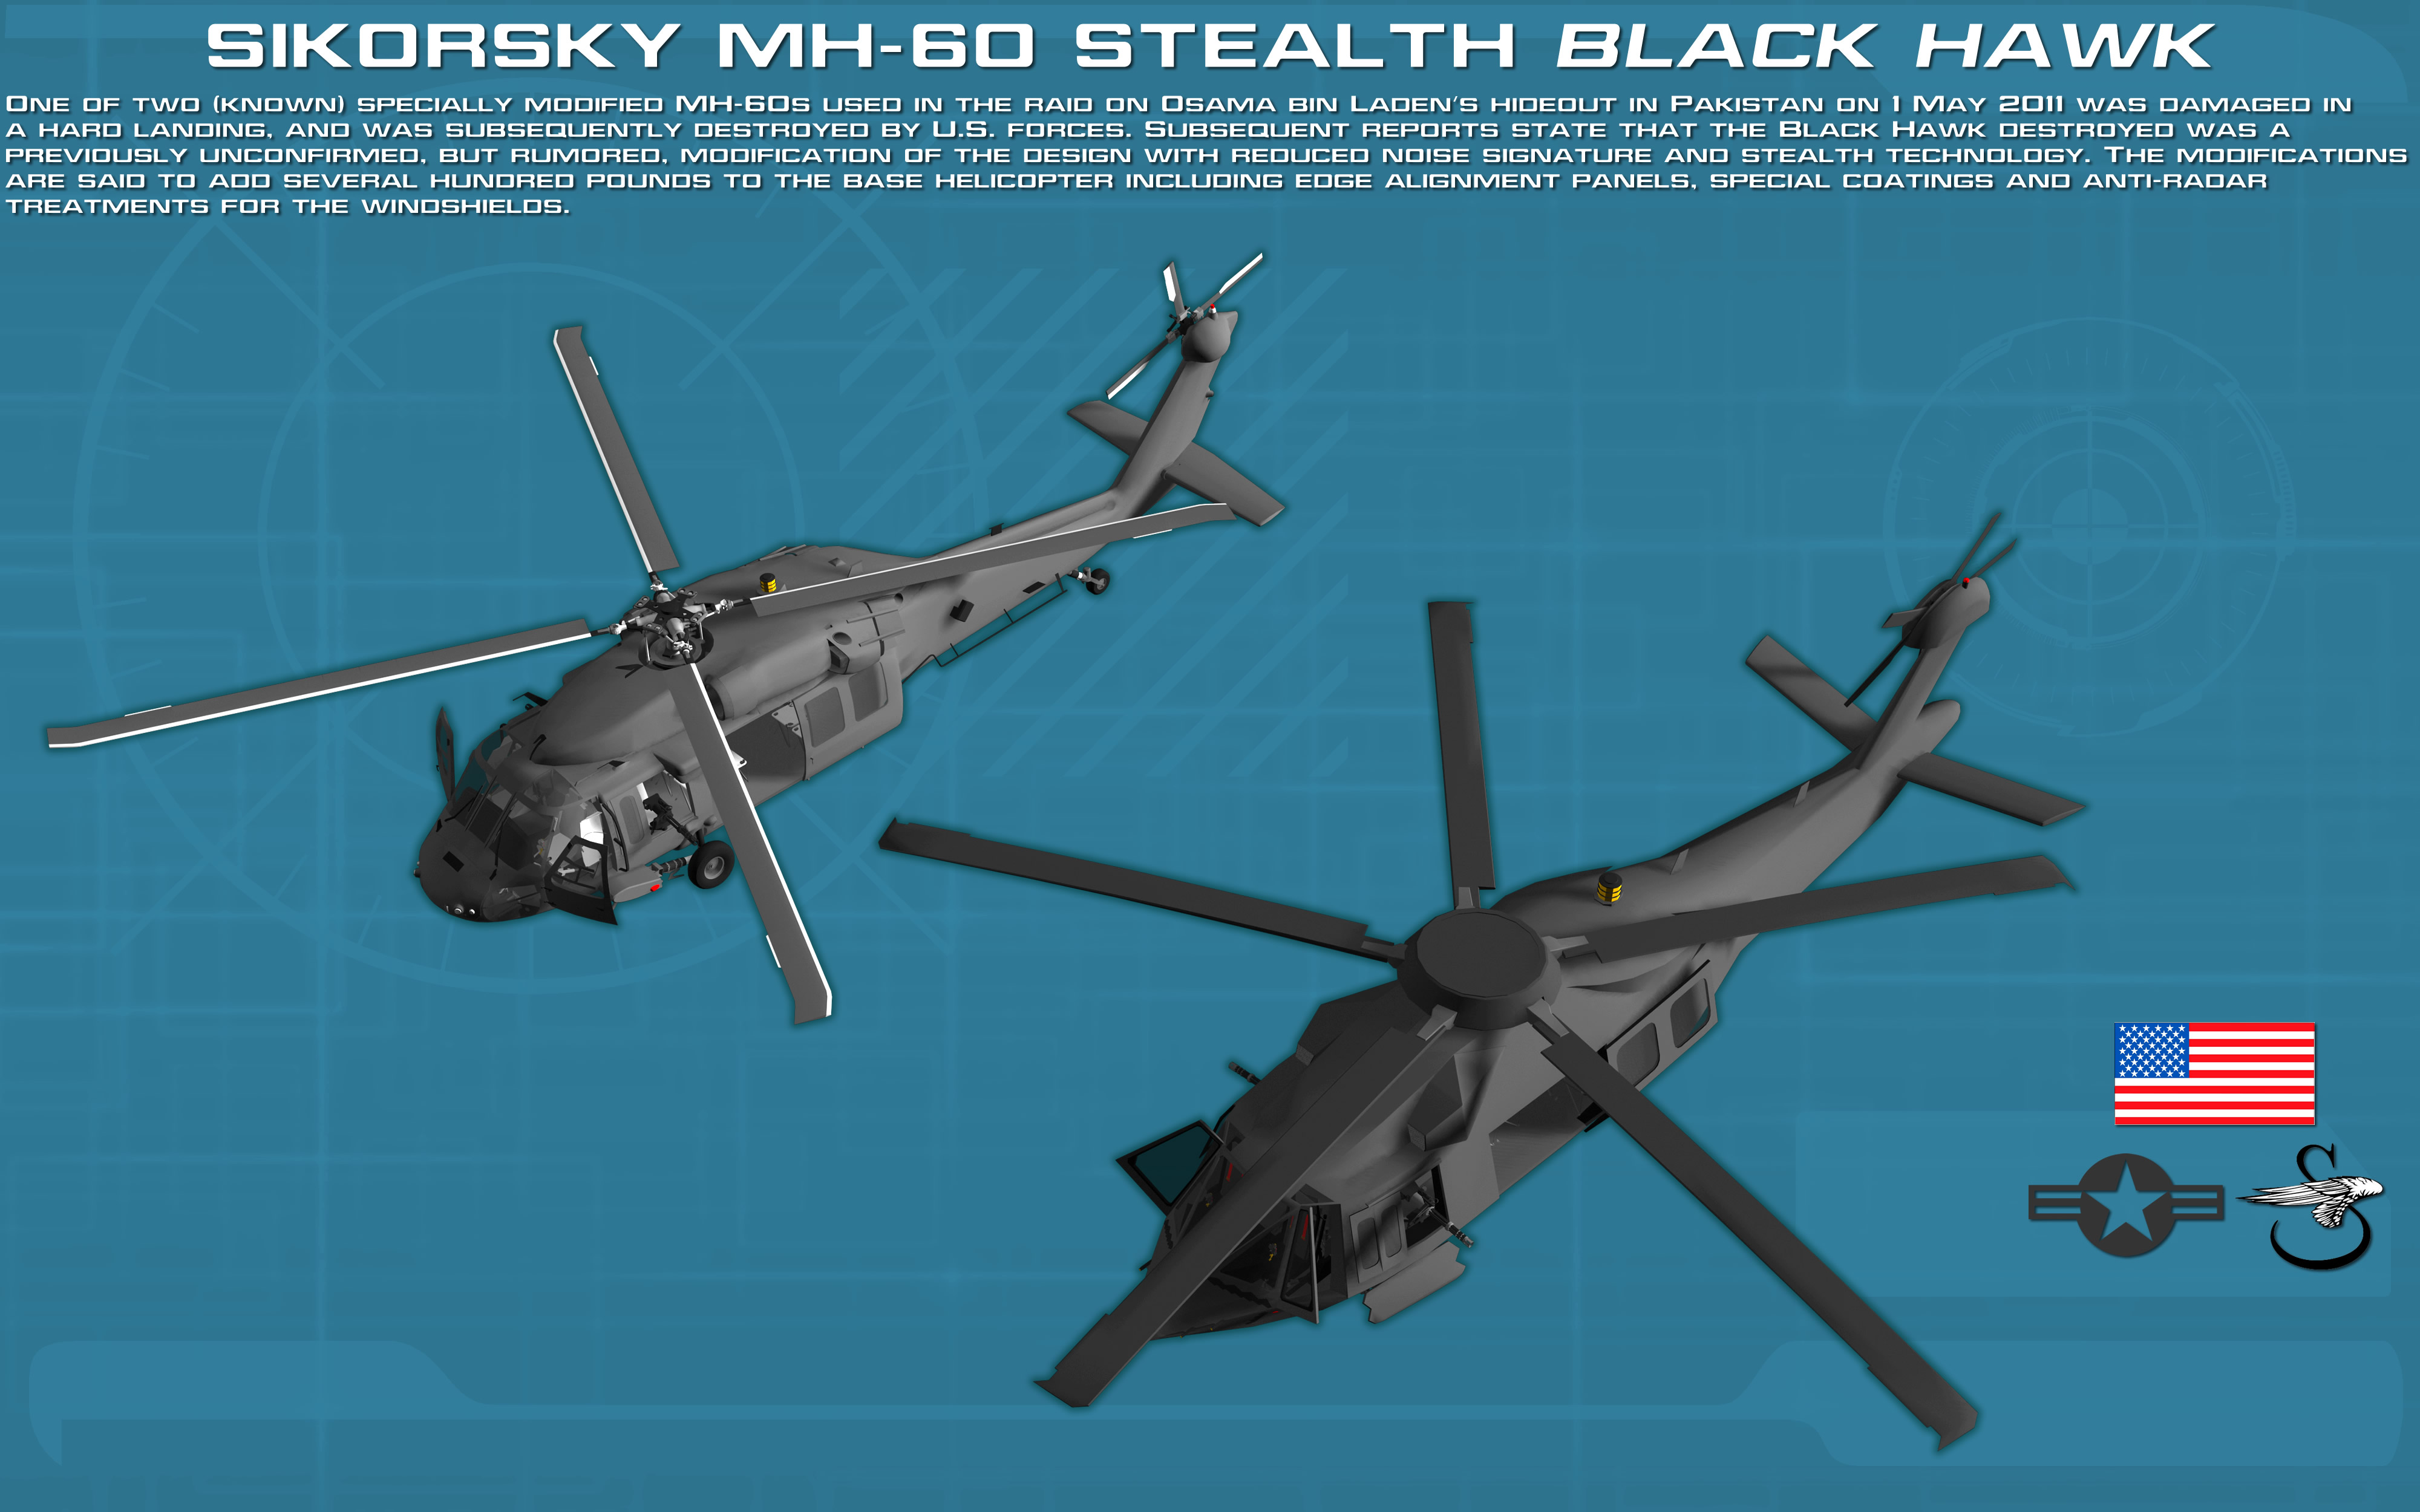 stealth helicopter with Stealth Sikorsky Black Hawk  Parison New 470844835 on Canada 443 Maritime Helicopter Squadron Receives First Sikorsky Ch 148 Cyclone Helicopter further J 20 Development Radar And Avionics as well Boeing Starliner 7 Jet Concept as well Cobra Snake Art as well Stealth Sikorsky Black Hawk  parison New 470844835.